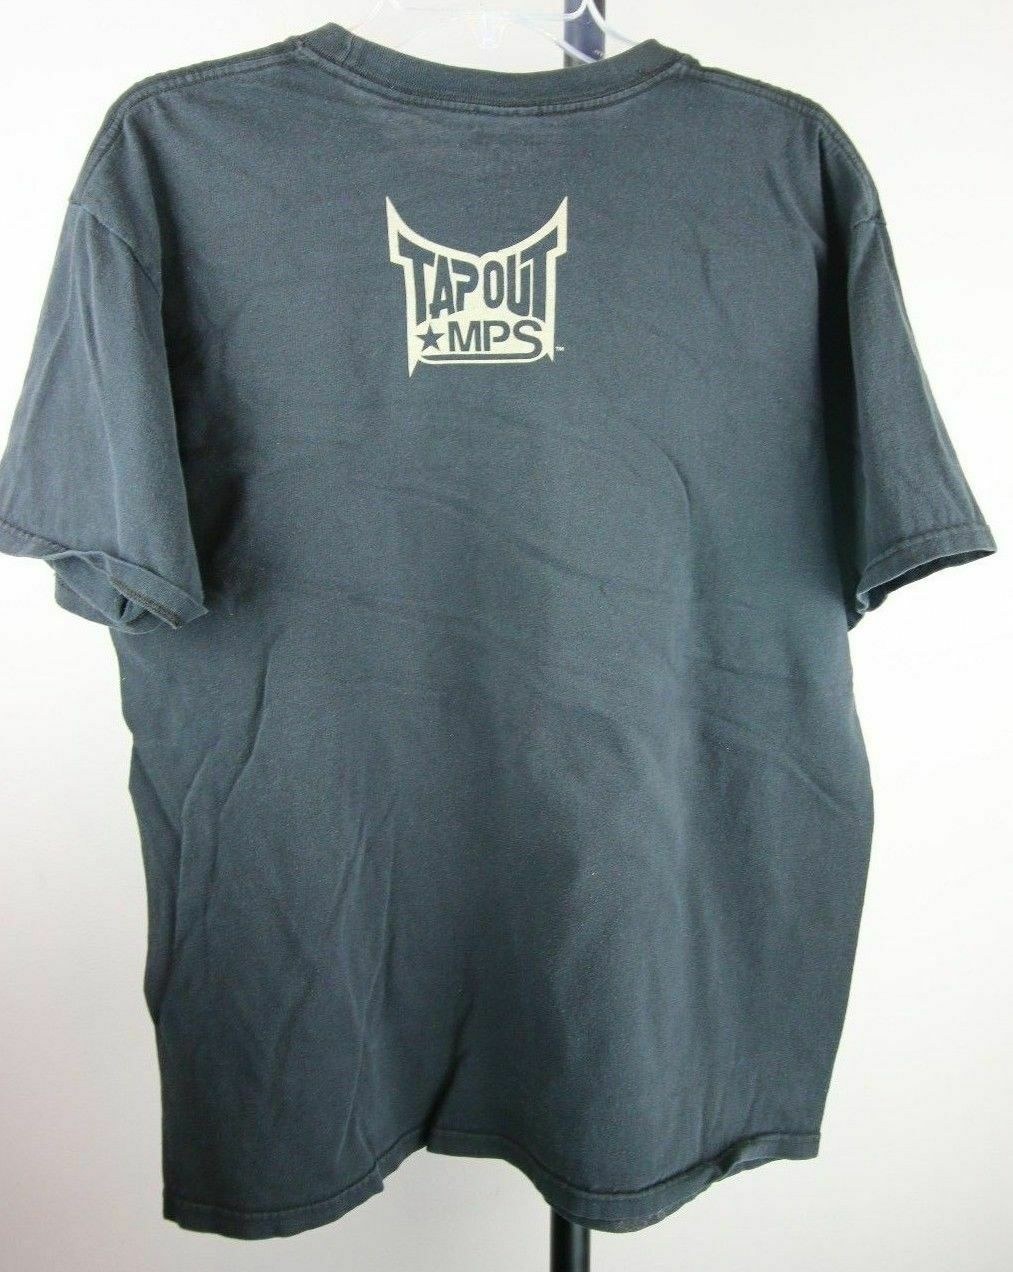 Mens Tapout MPS Black Graphic Tee Skeleton Snake T-shirt Size Large MMA - Fazoom